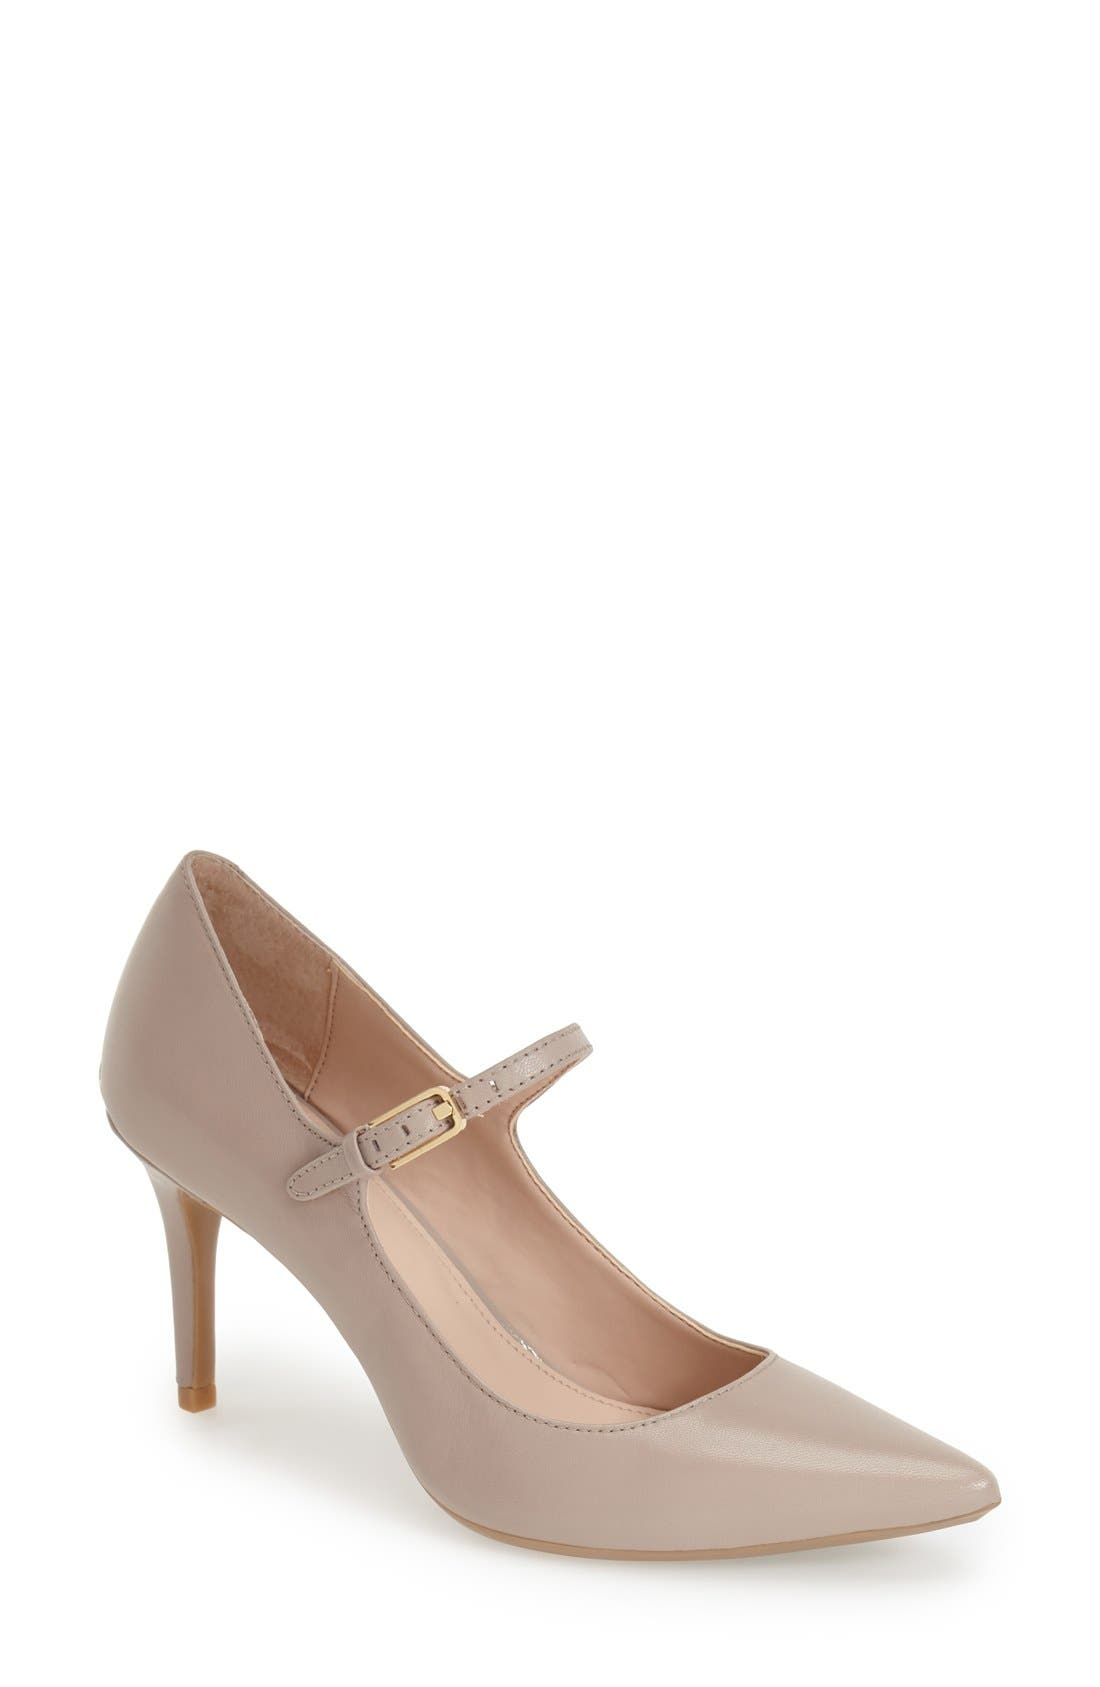 Main Image - Calvin Klein 'Genavee' Pointy Toe Pump (Women)